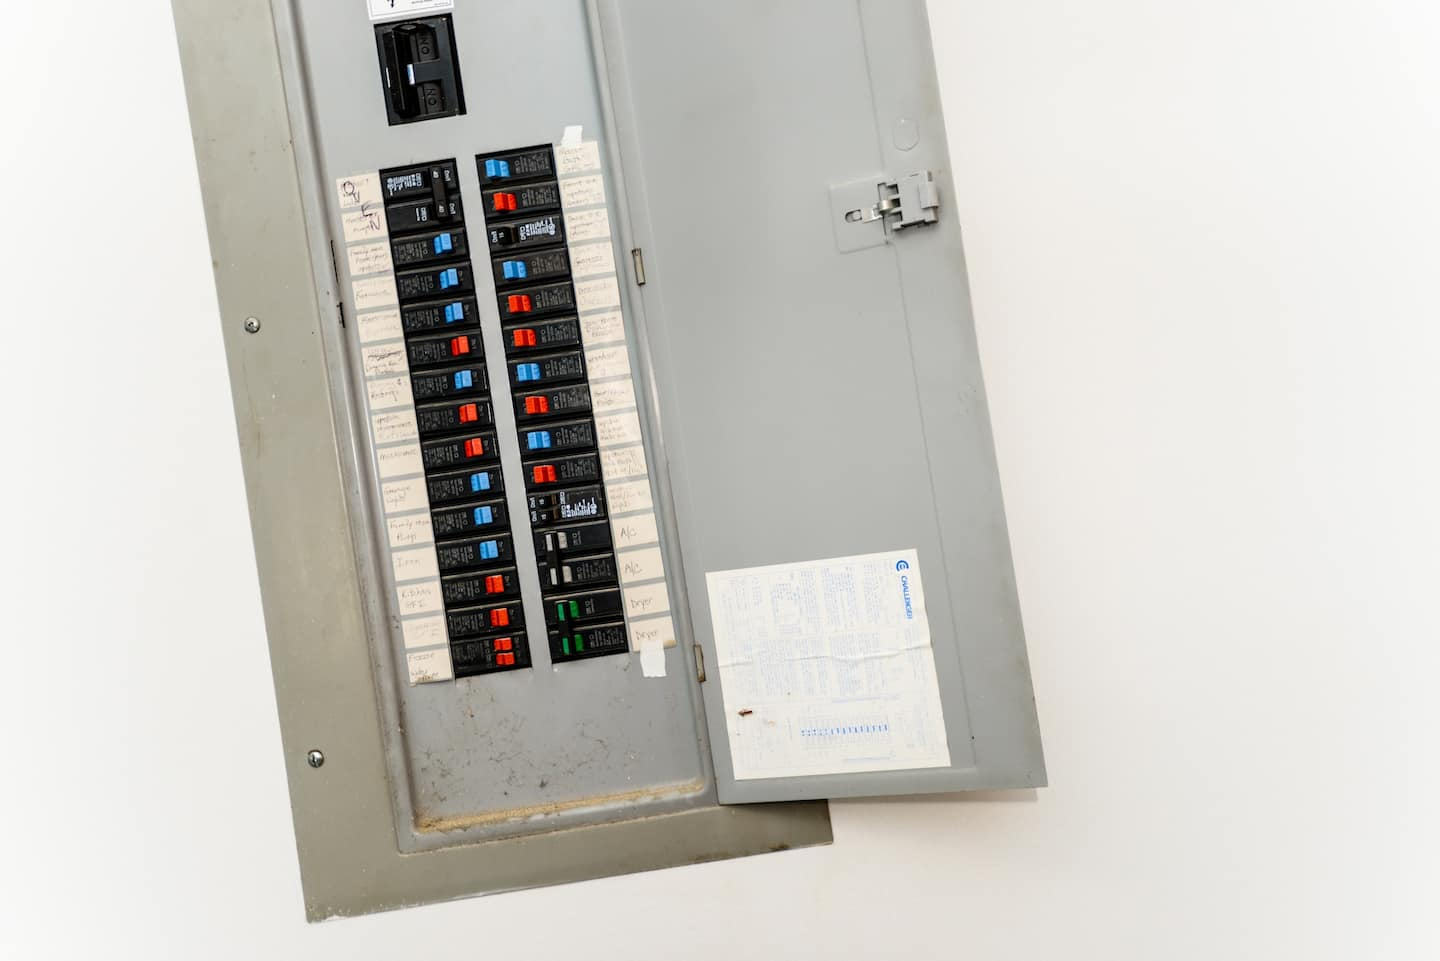 Circuit Breaker Cabinet How Water Gets Into Electrical Circuit Panels Angies List